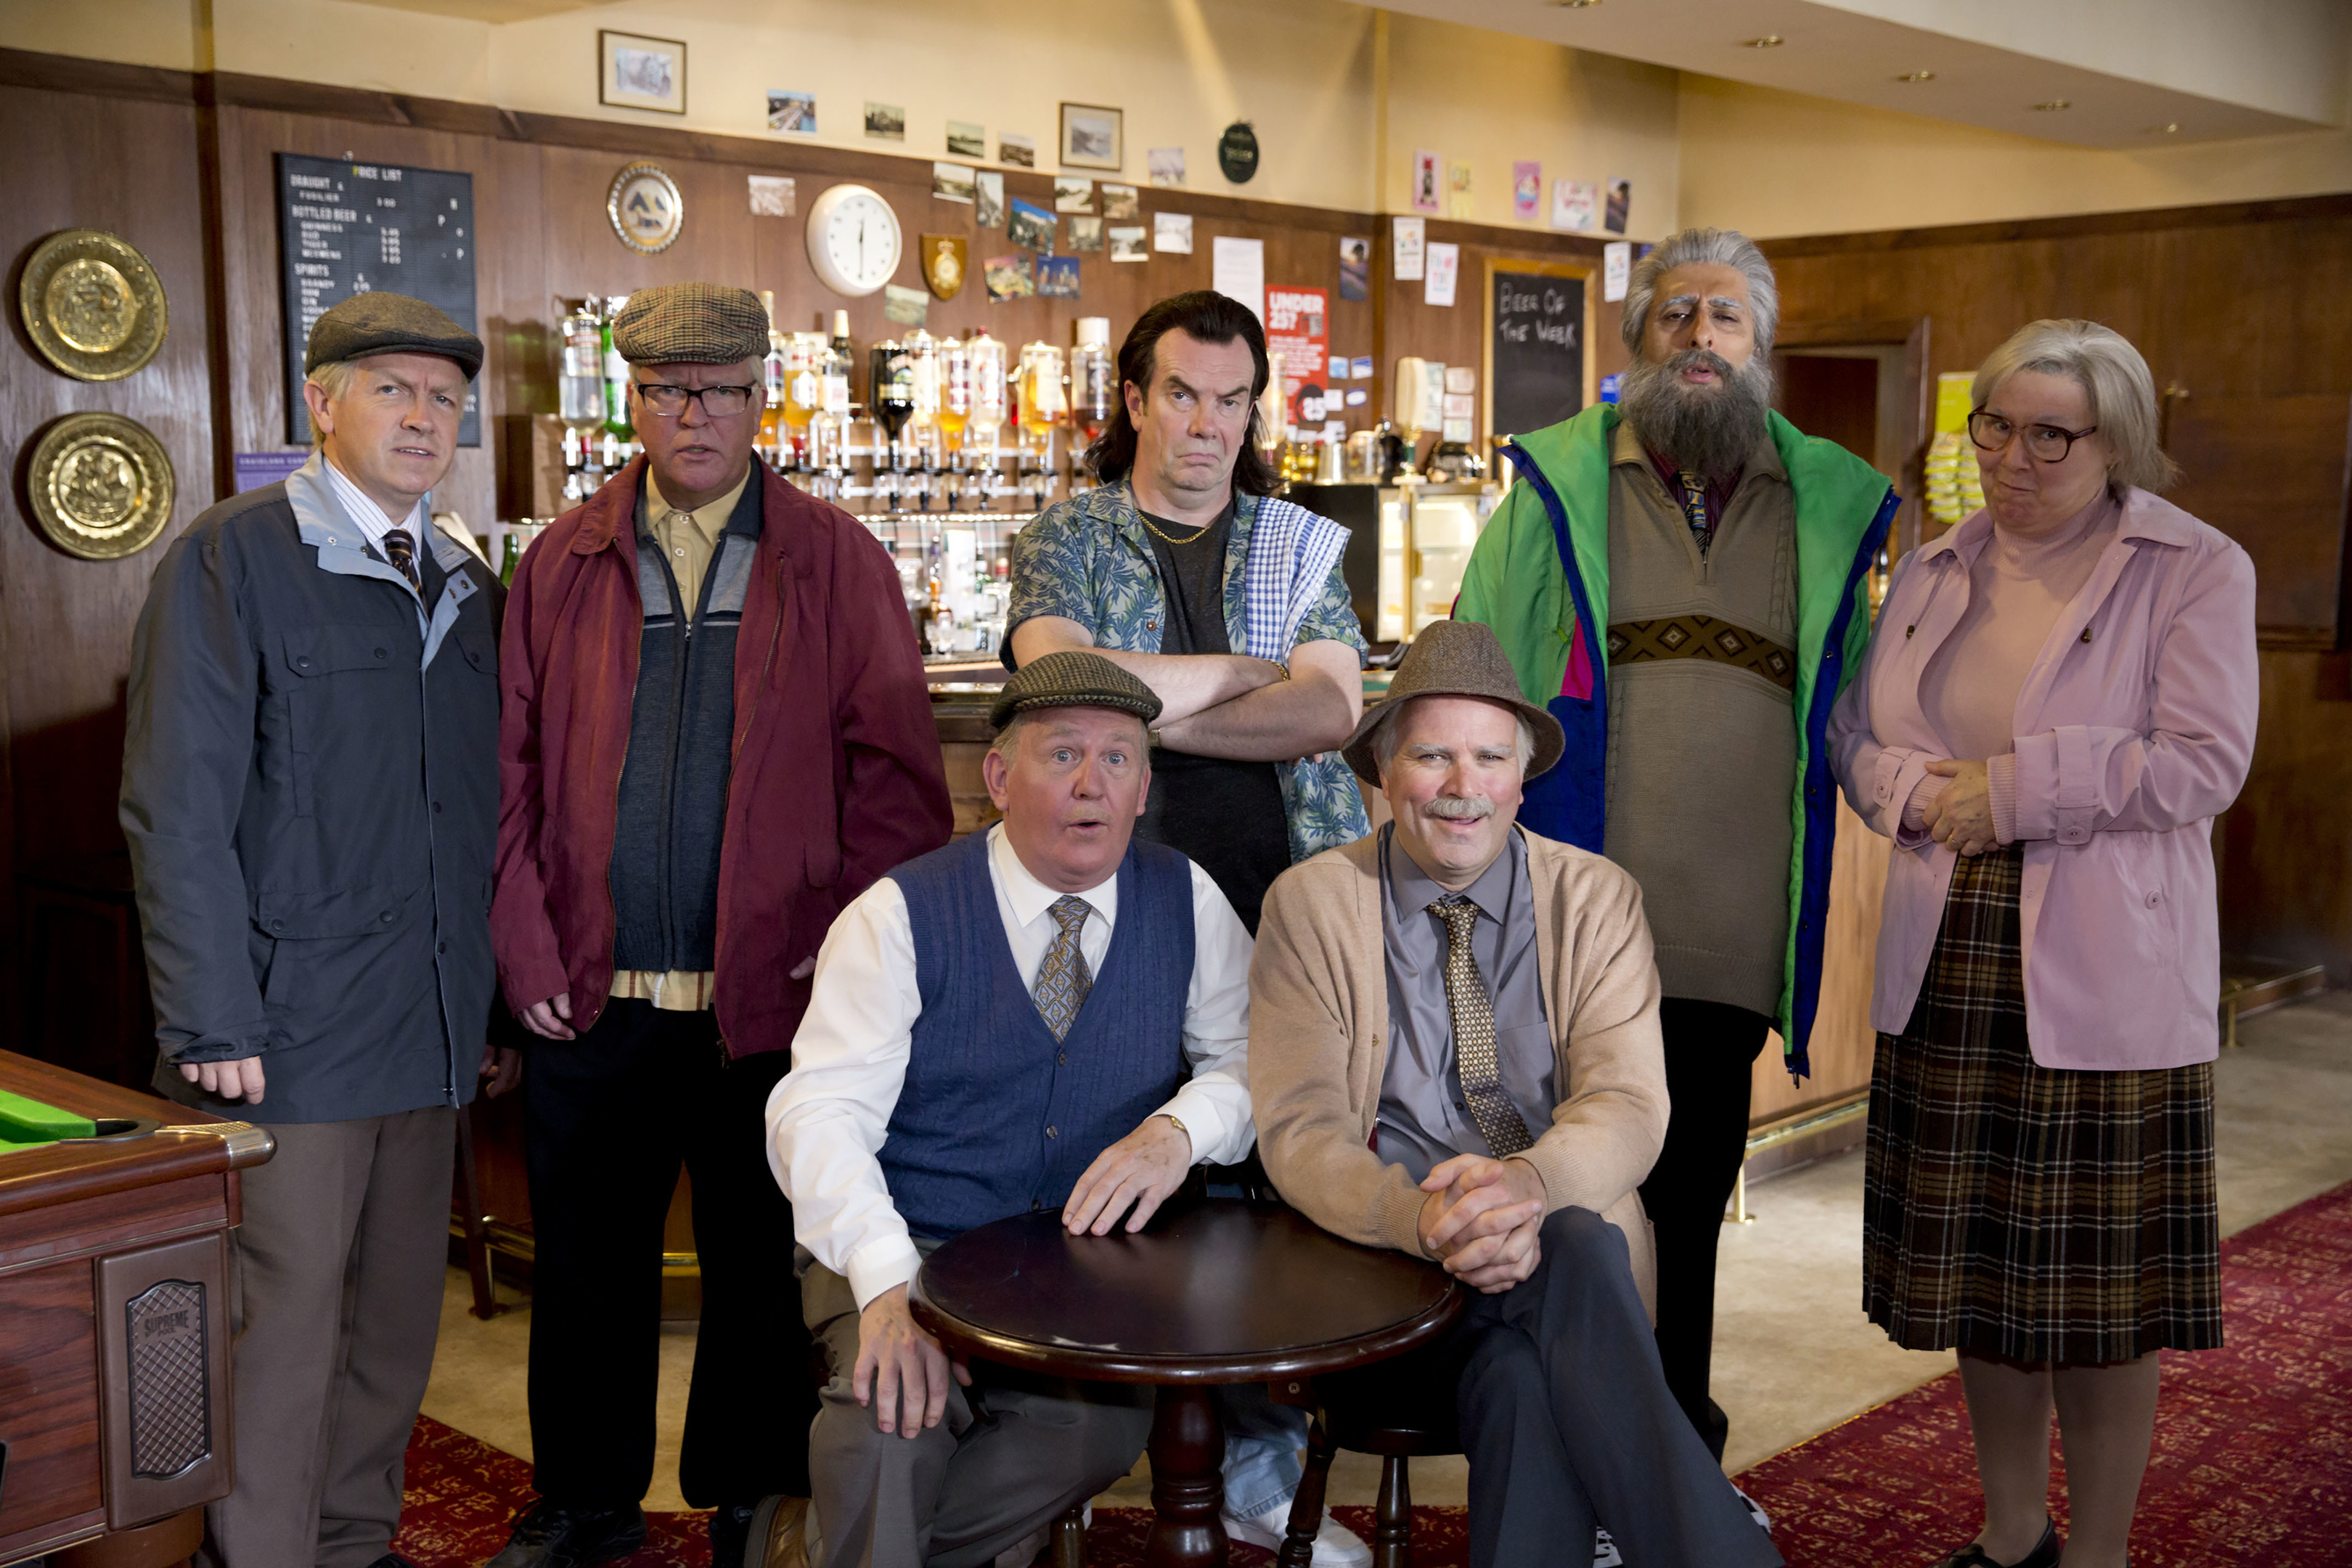 Still Game has returned to television after a nine year absence